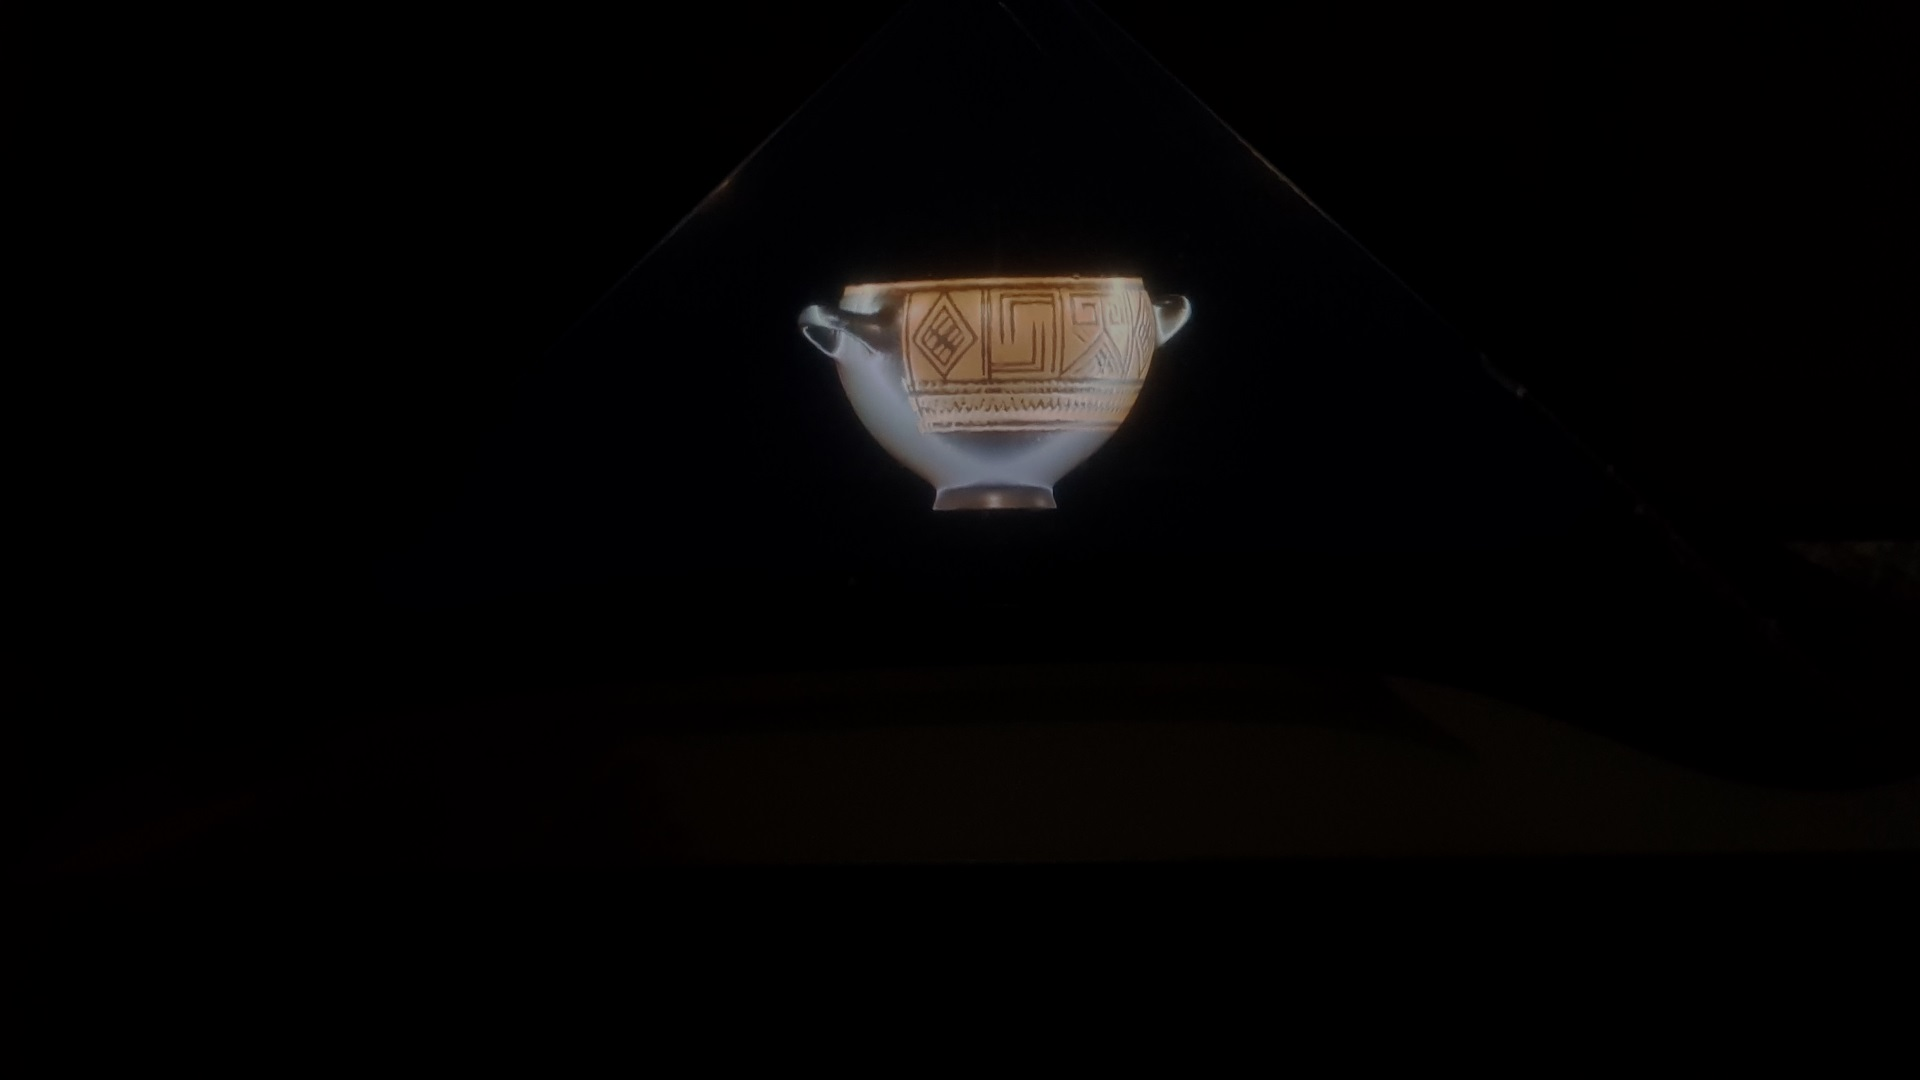 Hologram - Nestor cup with animation